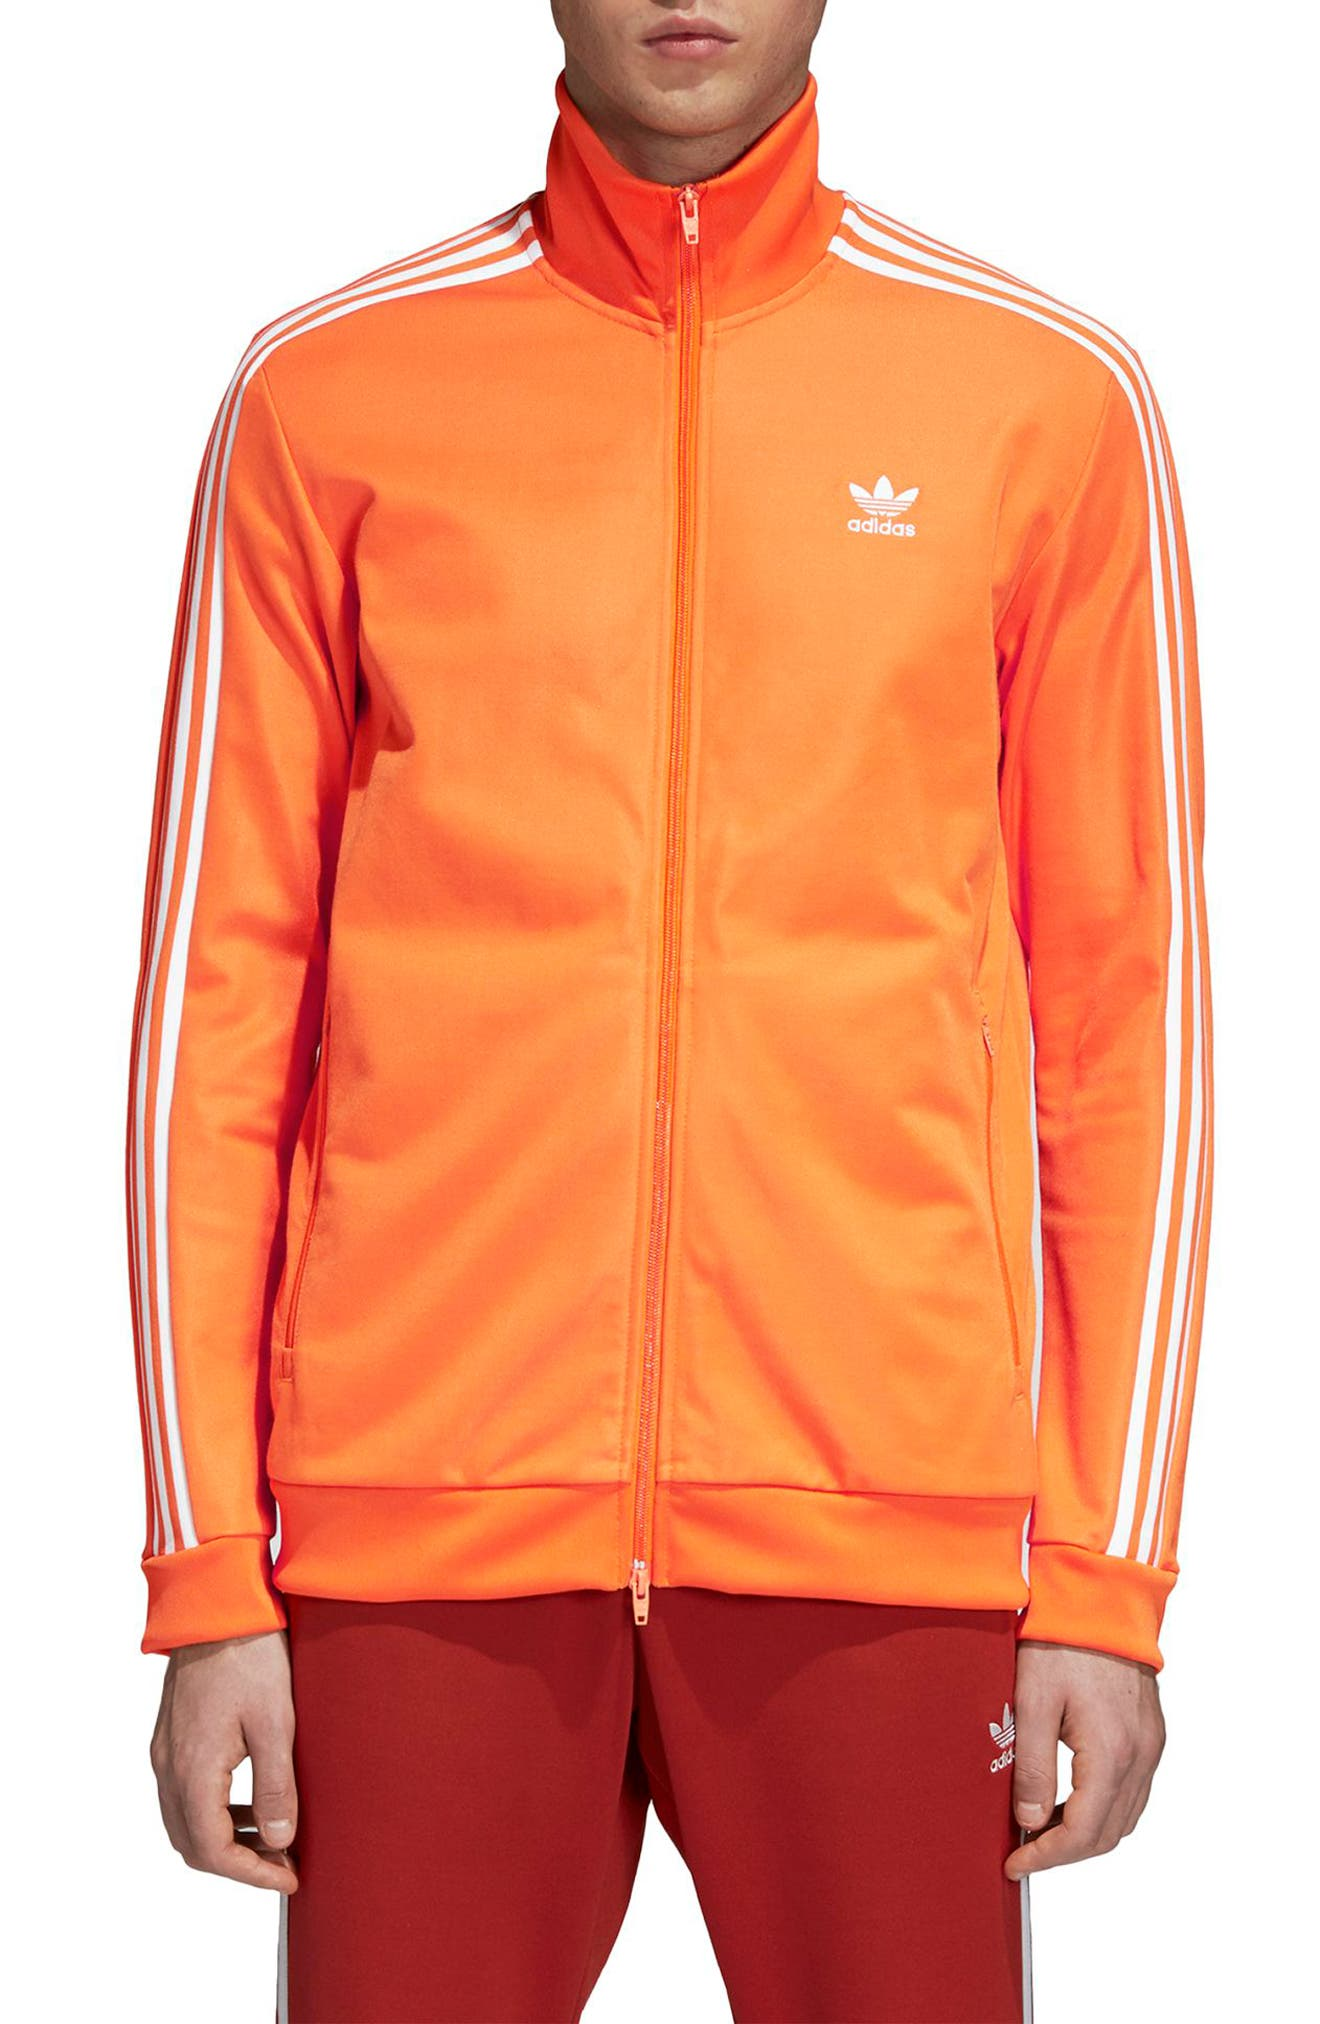 BB Track Jacket,                             Main thumbnail 1, color,                             Bright Orange